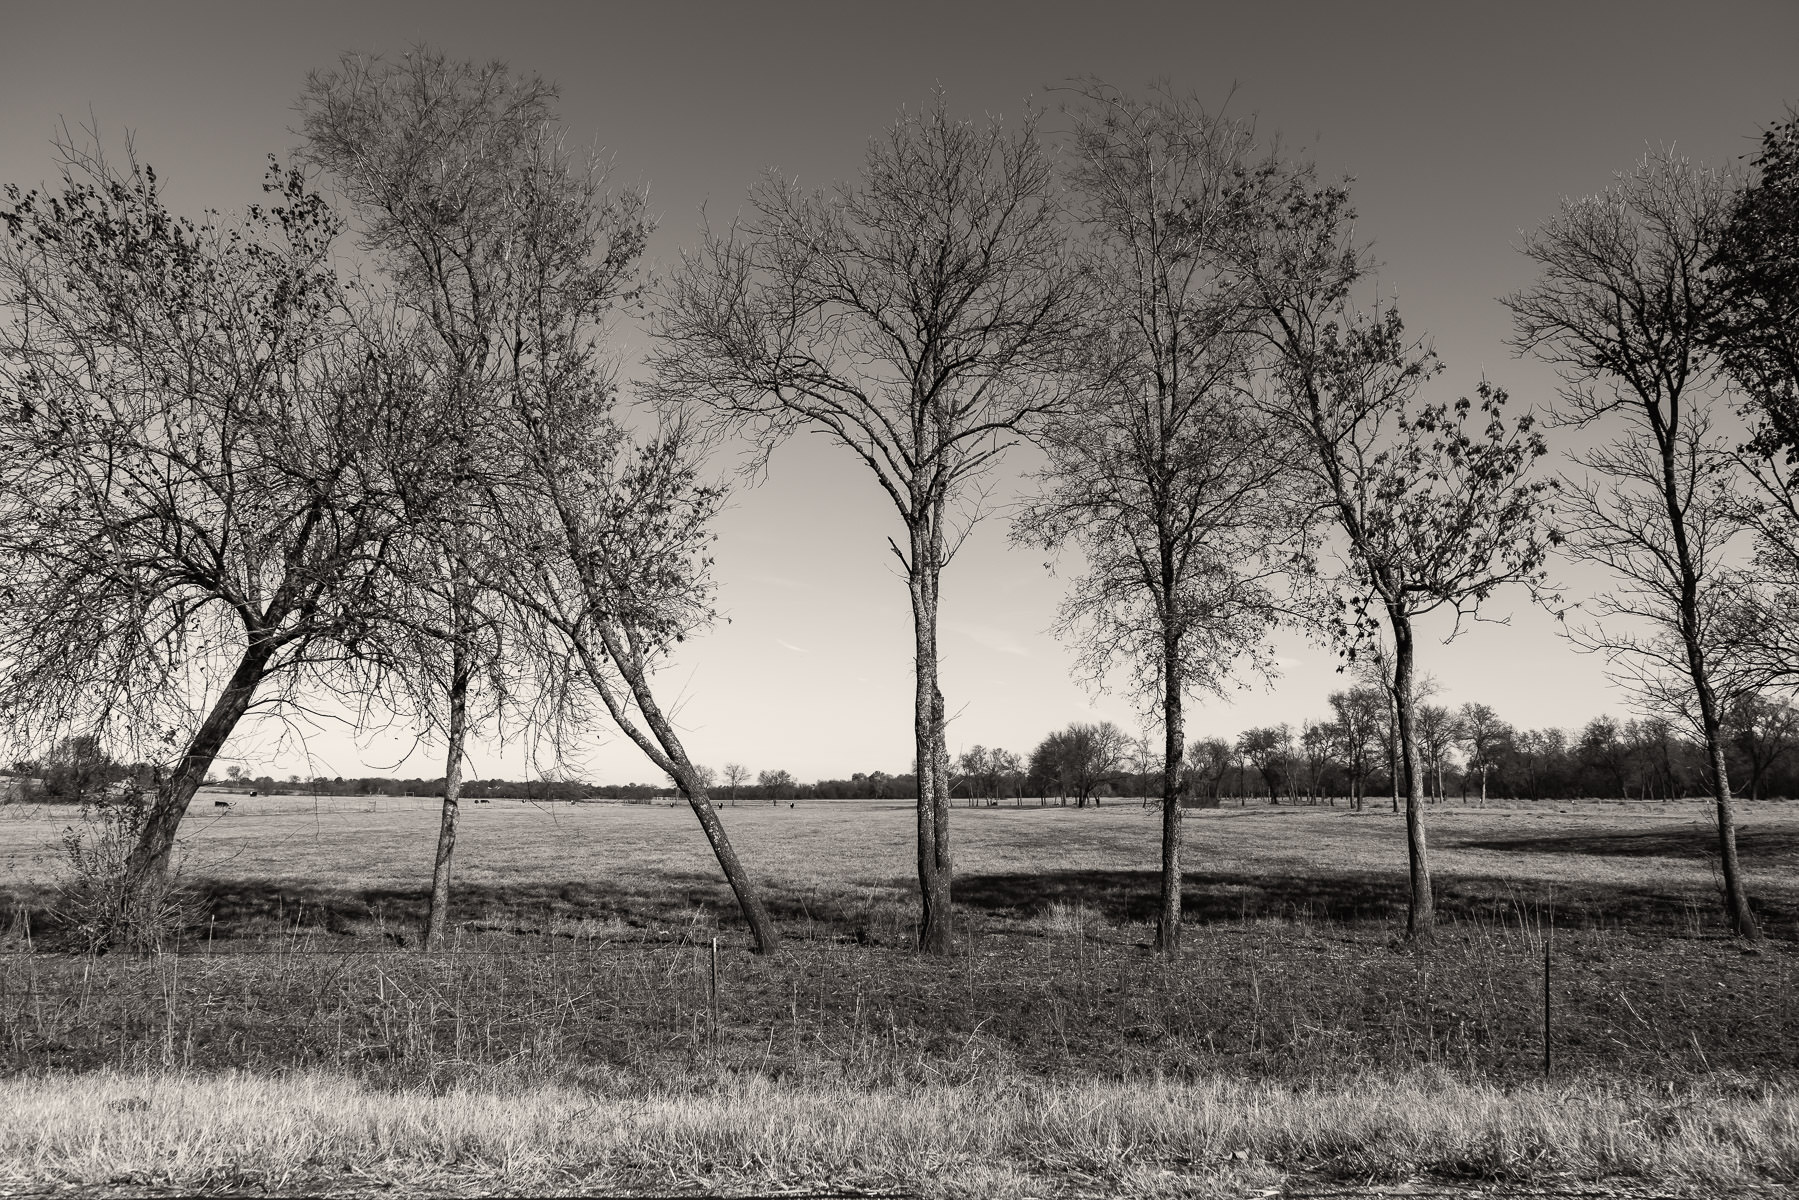 Trees grow along the edge of a farm field near Blue Ridge, Texas.